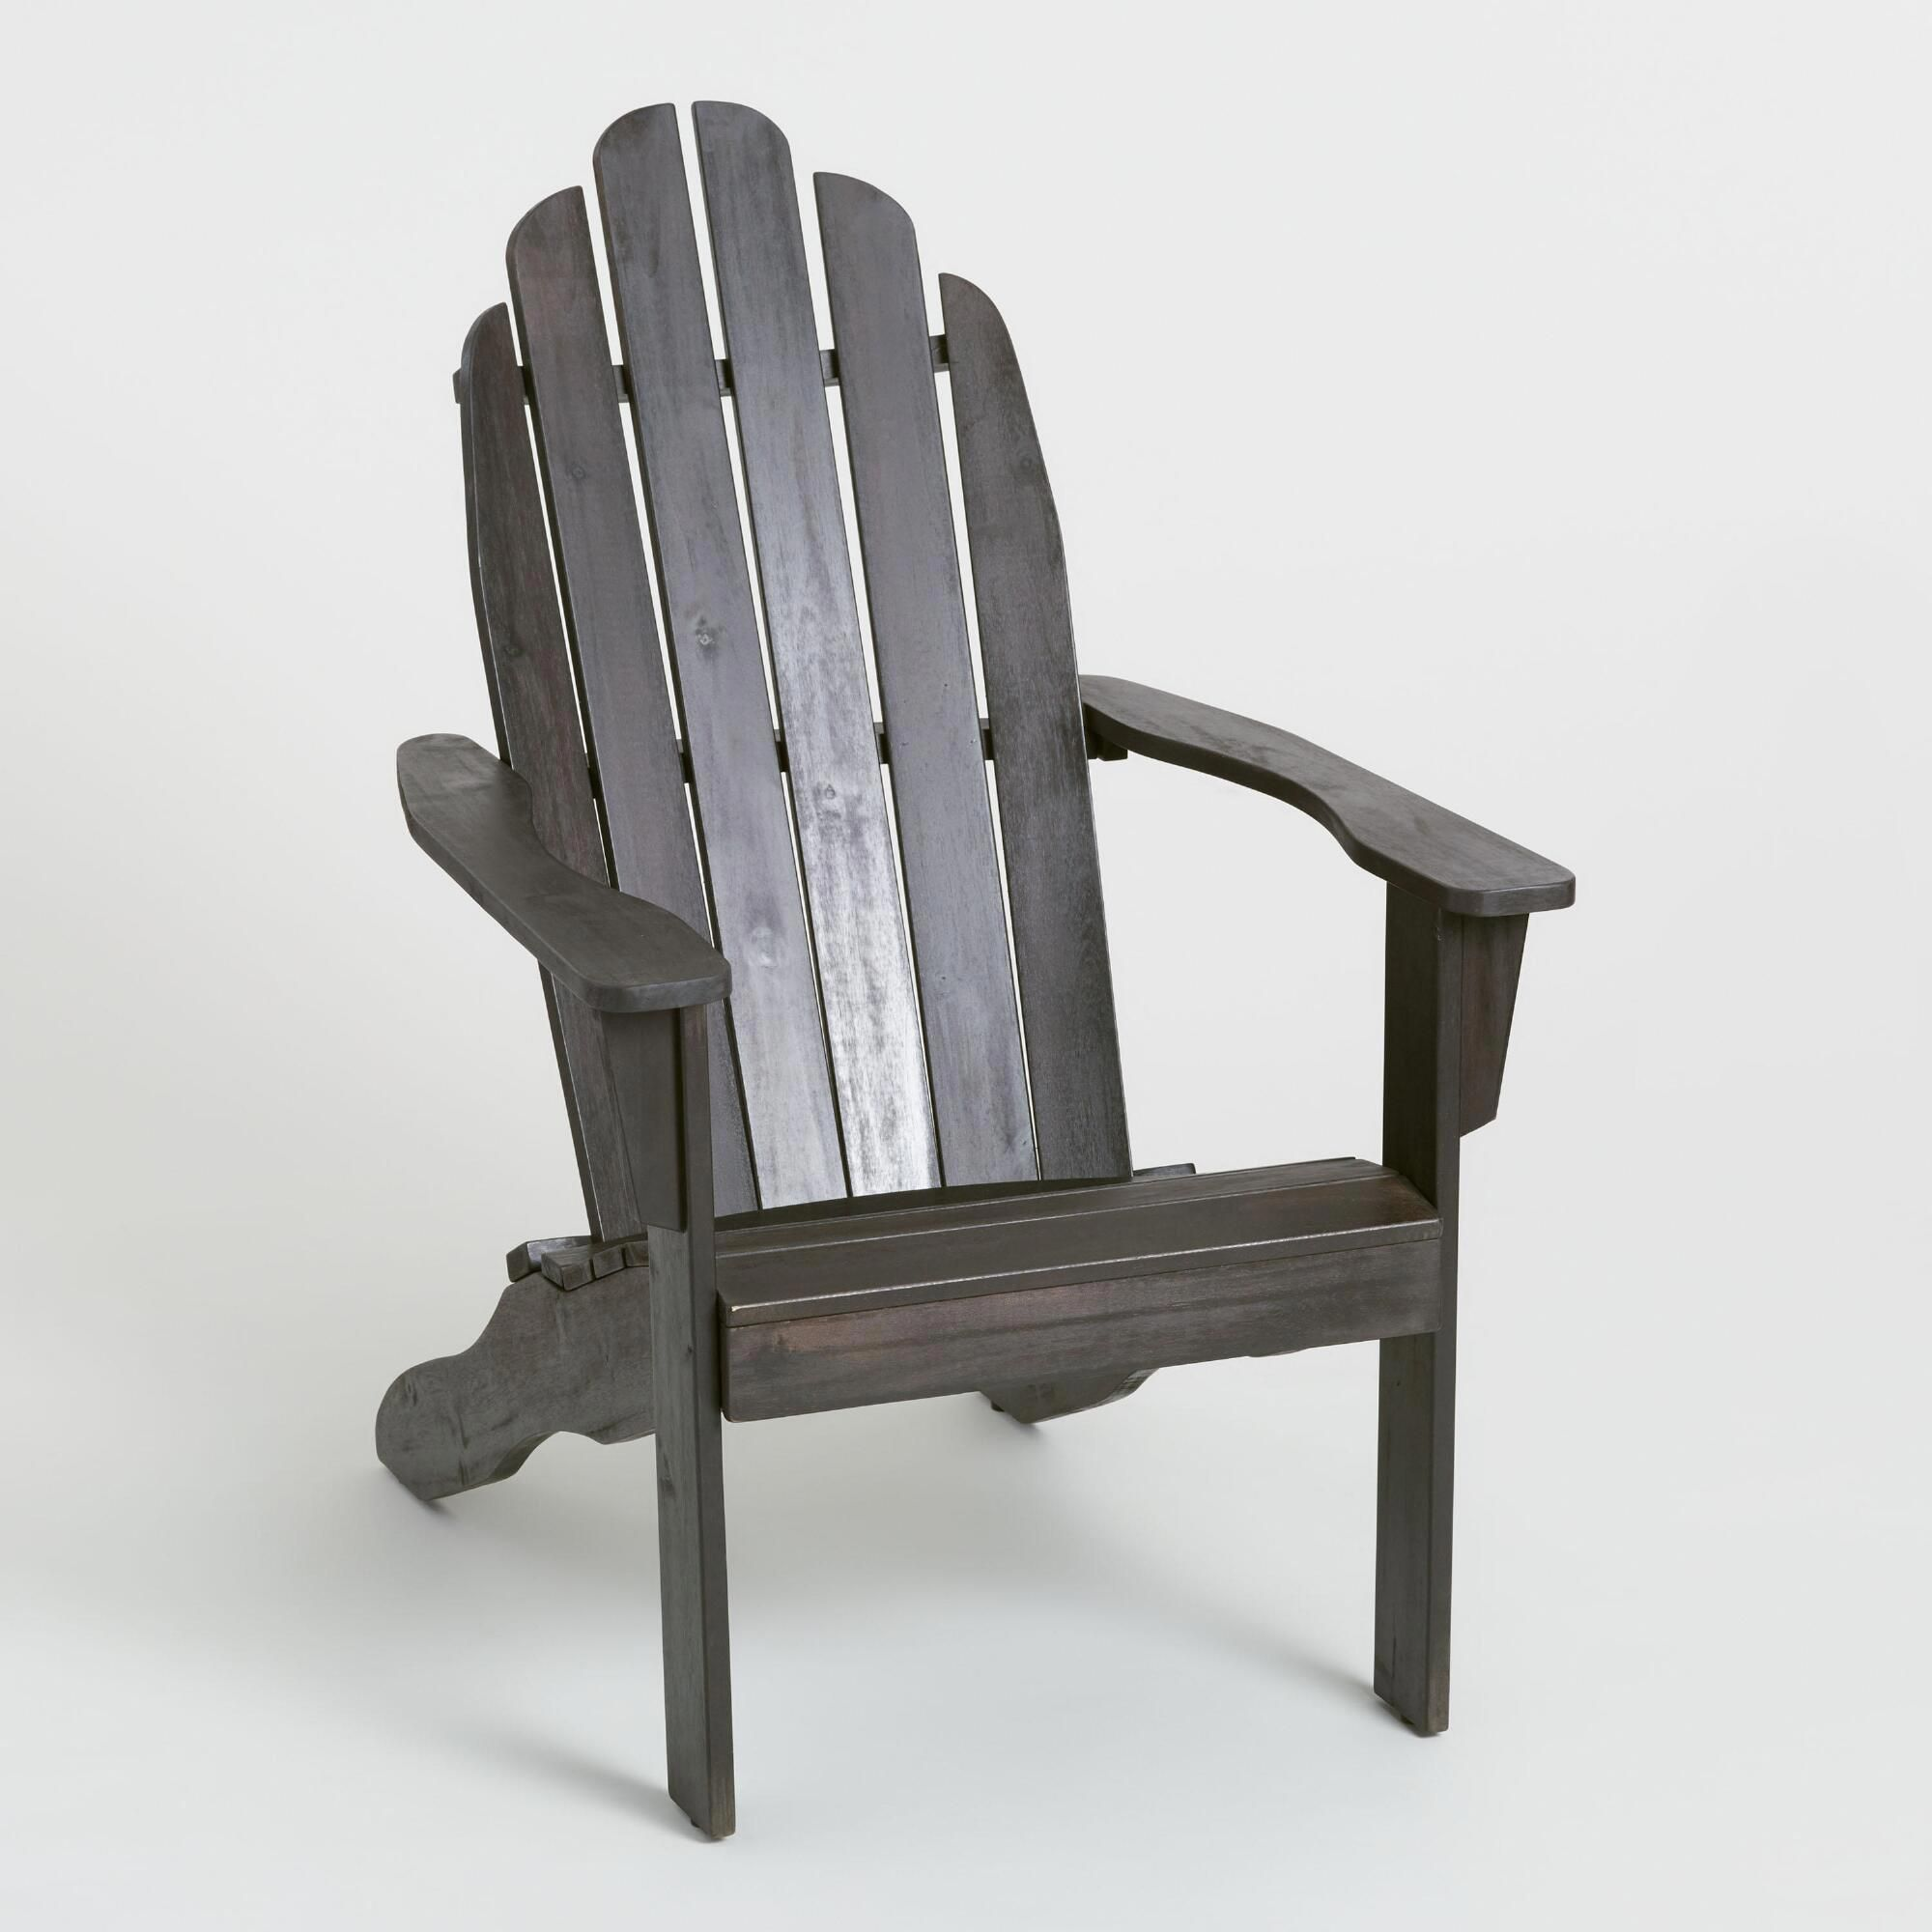 Espresso Brown Adirondack Chair By World Market Adirondackchairs